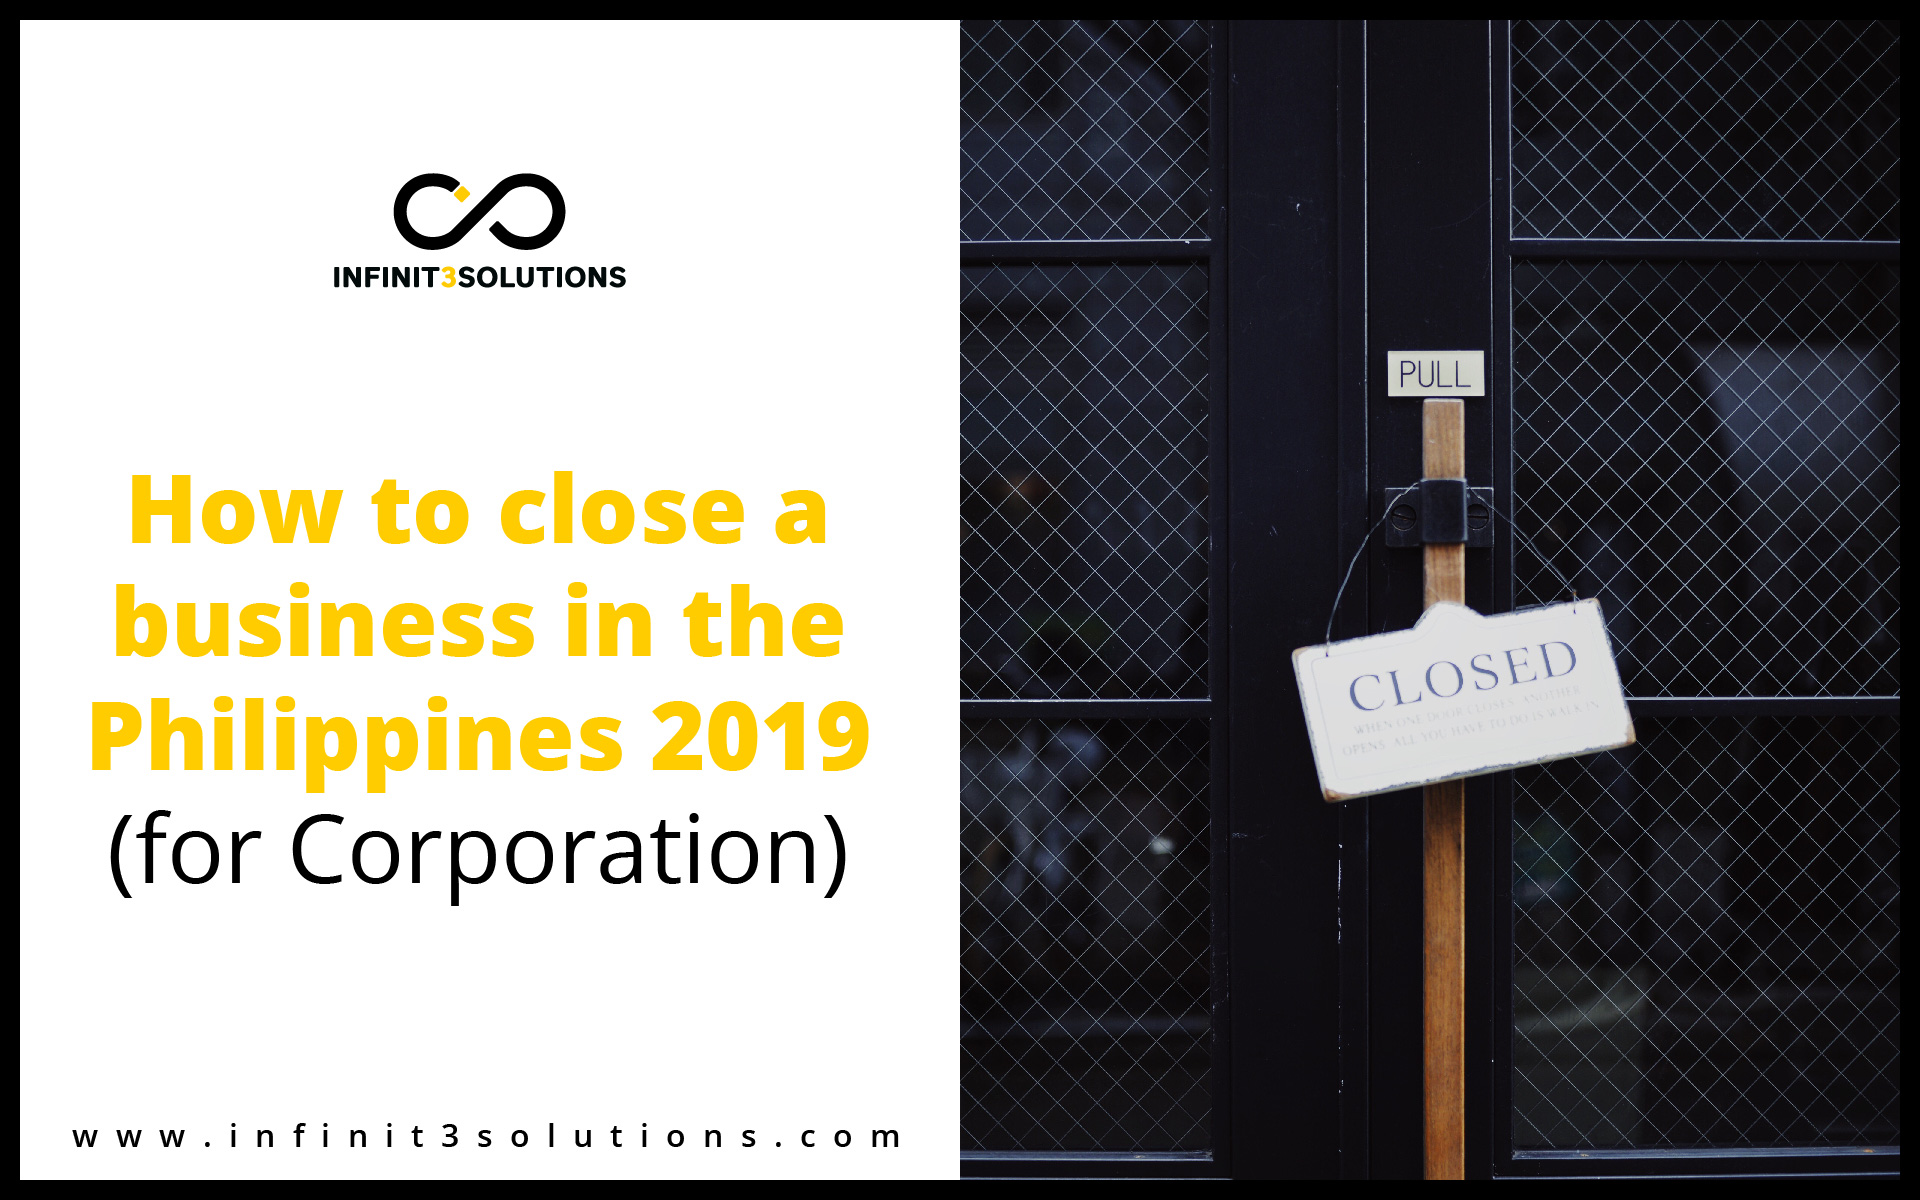 How to close a business in the Philippines 2019 for Corporation